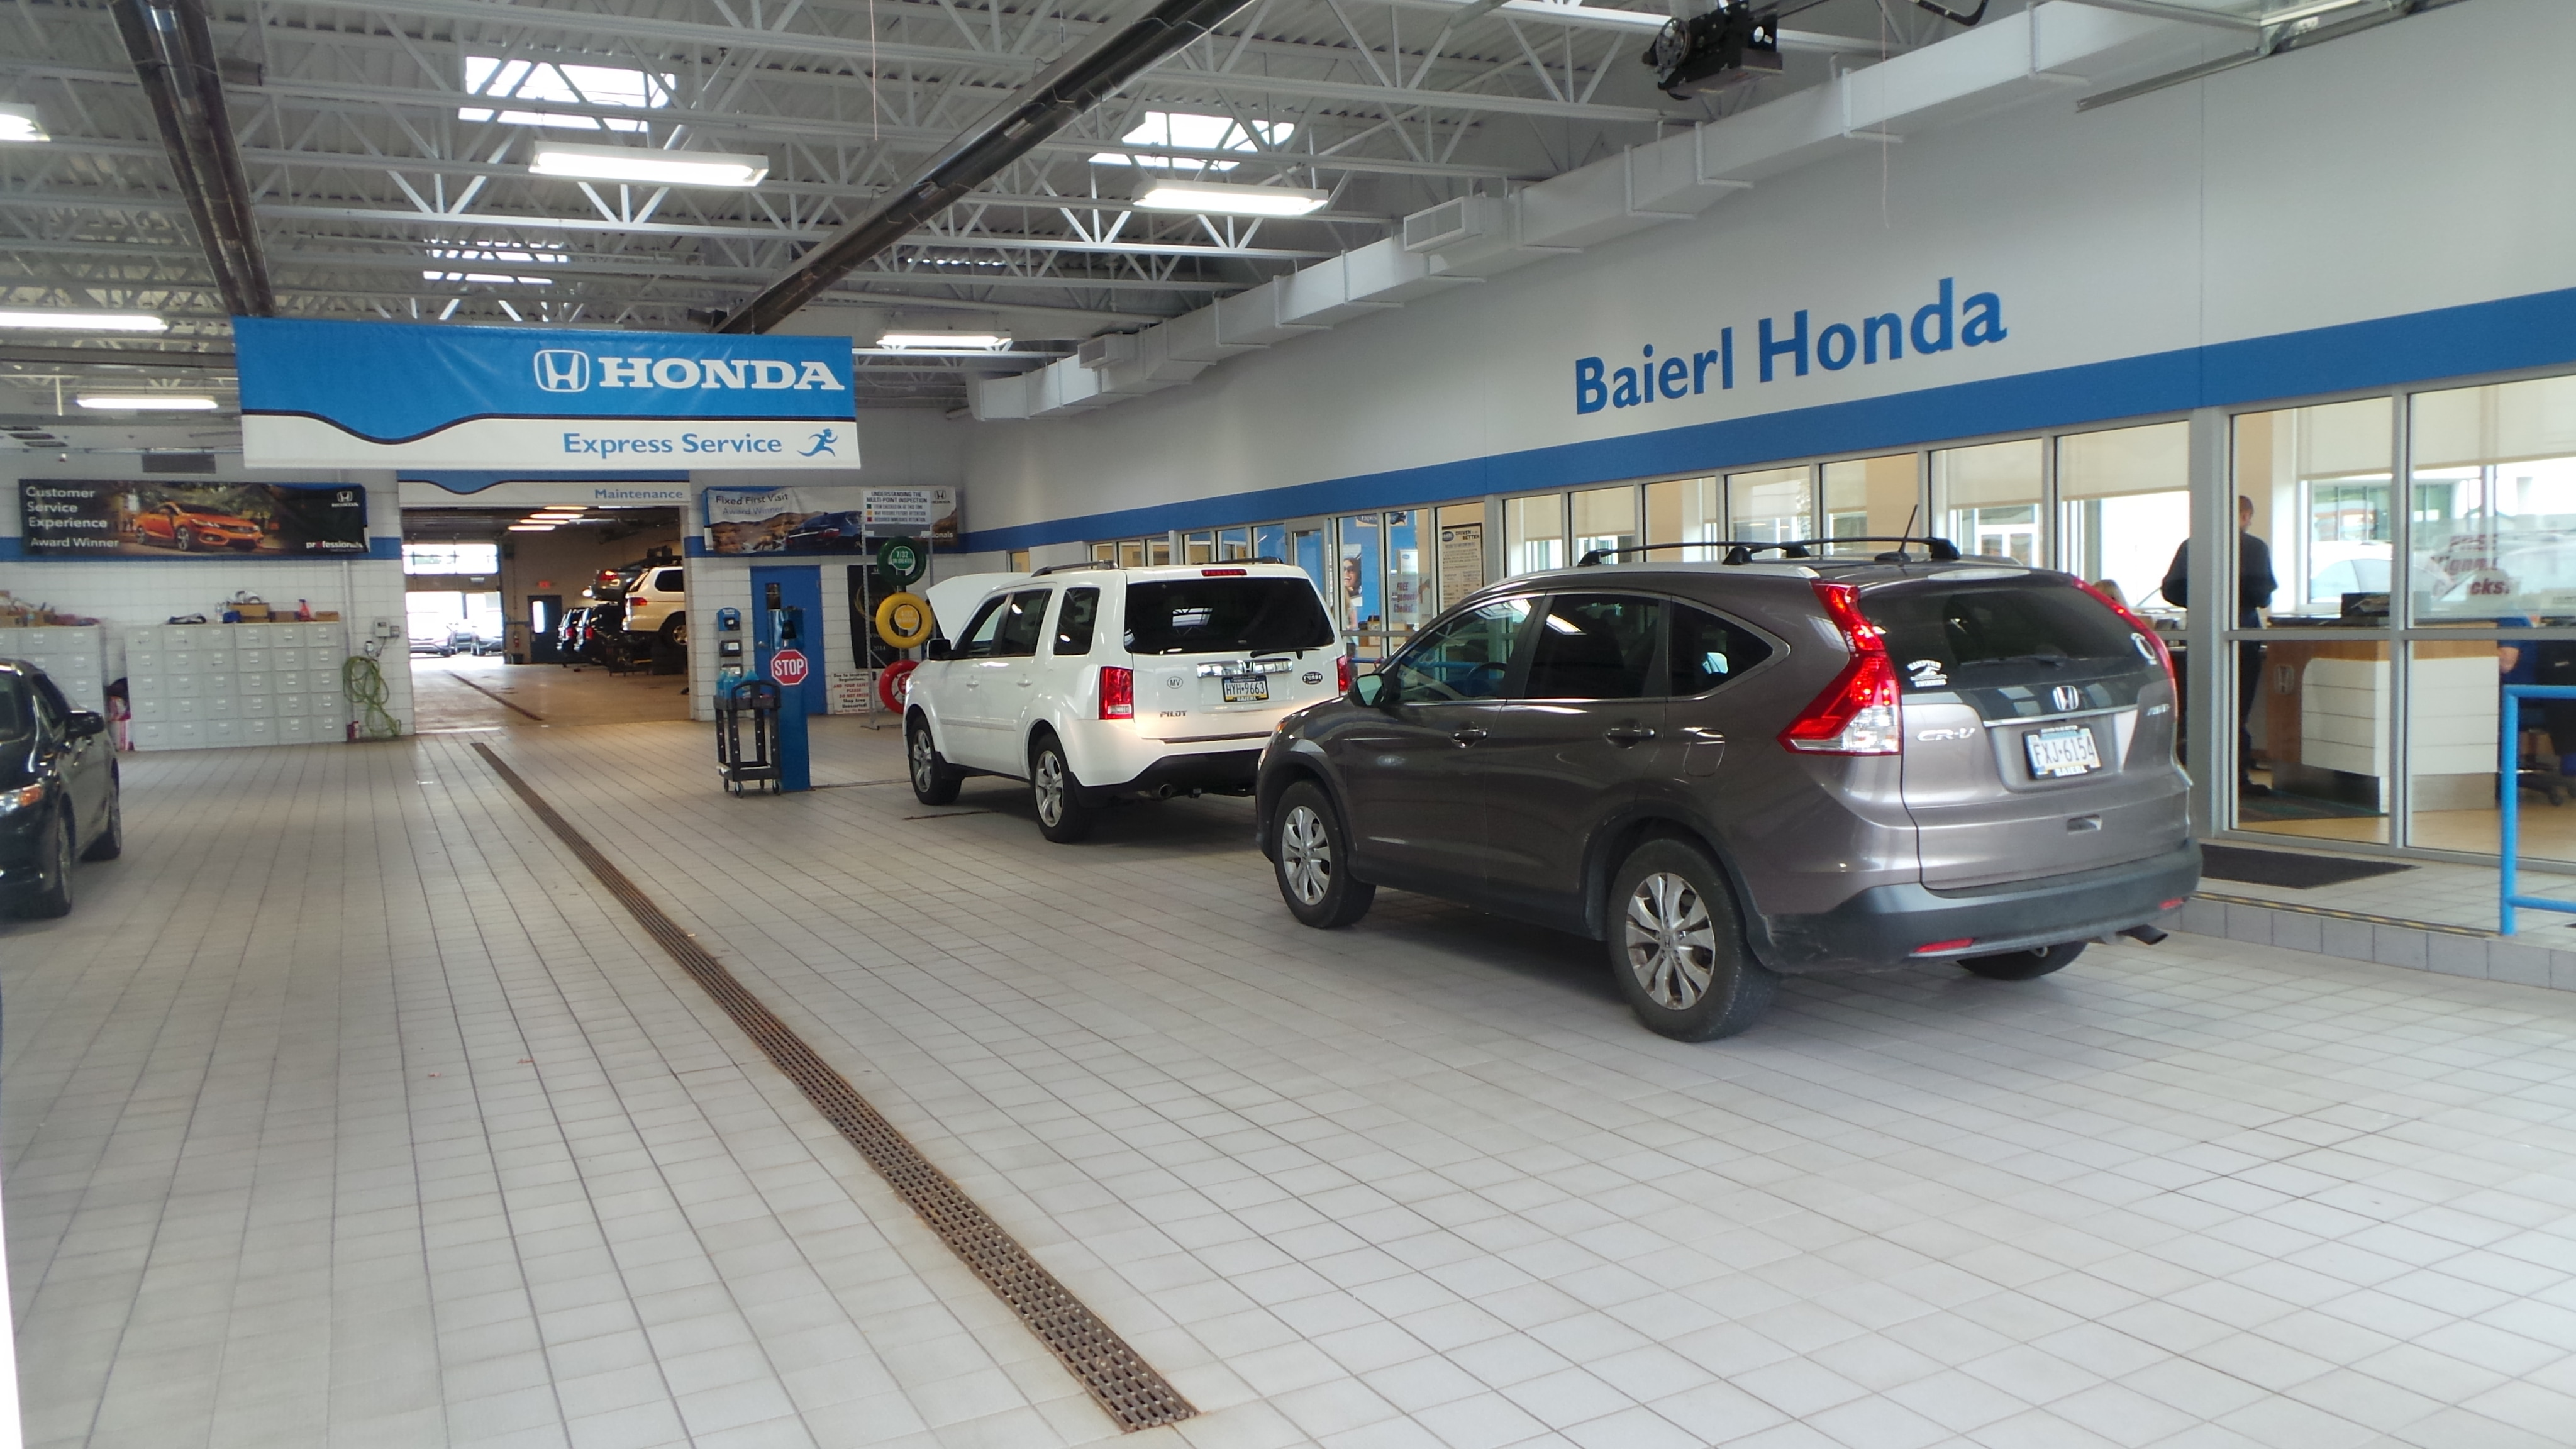 Baierl automotive new used car dealership in wexford html for Washington dc honda dealers